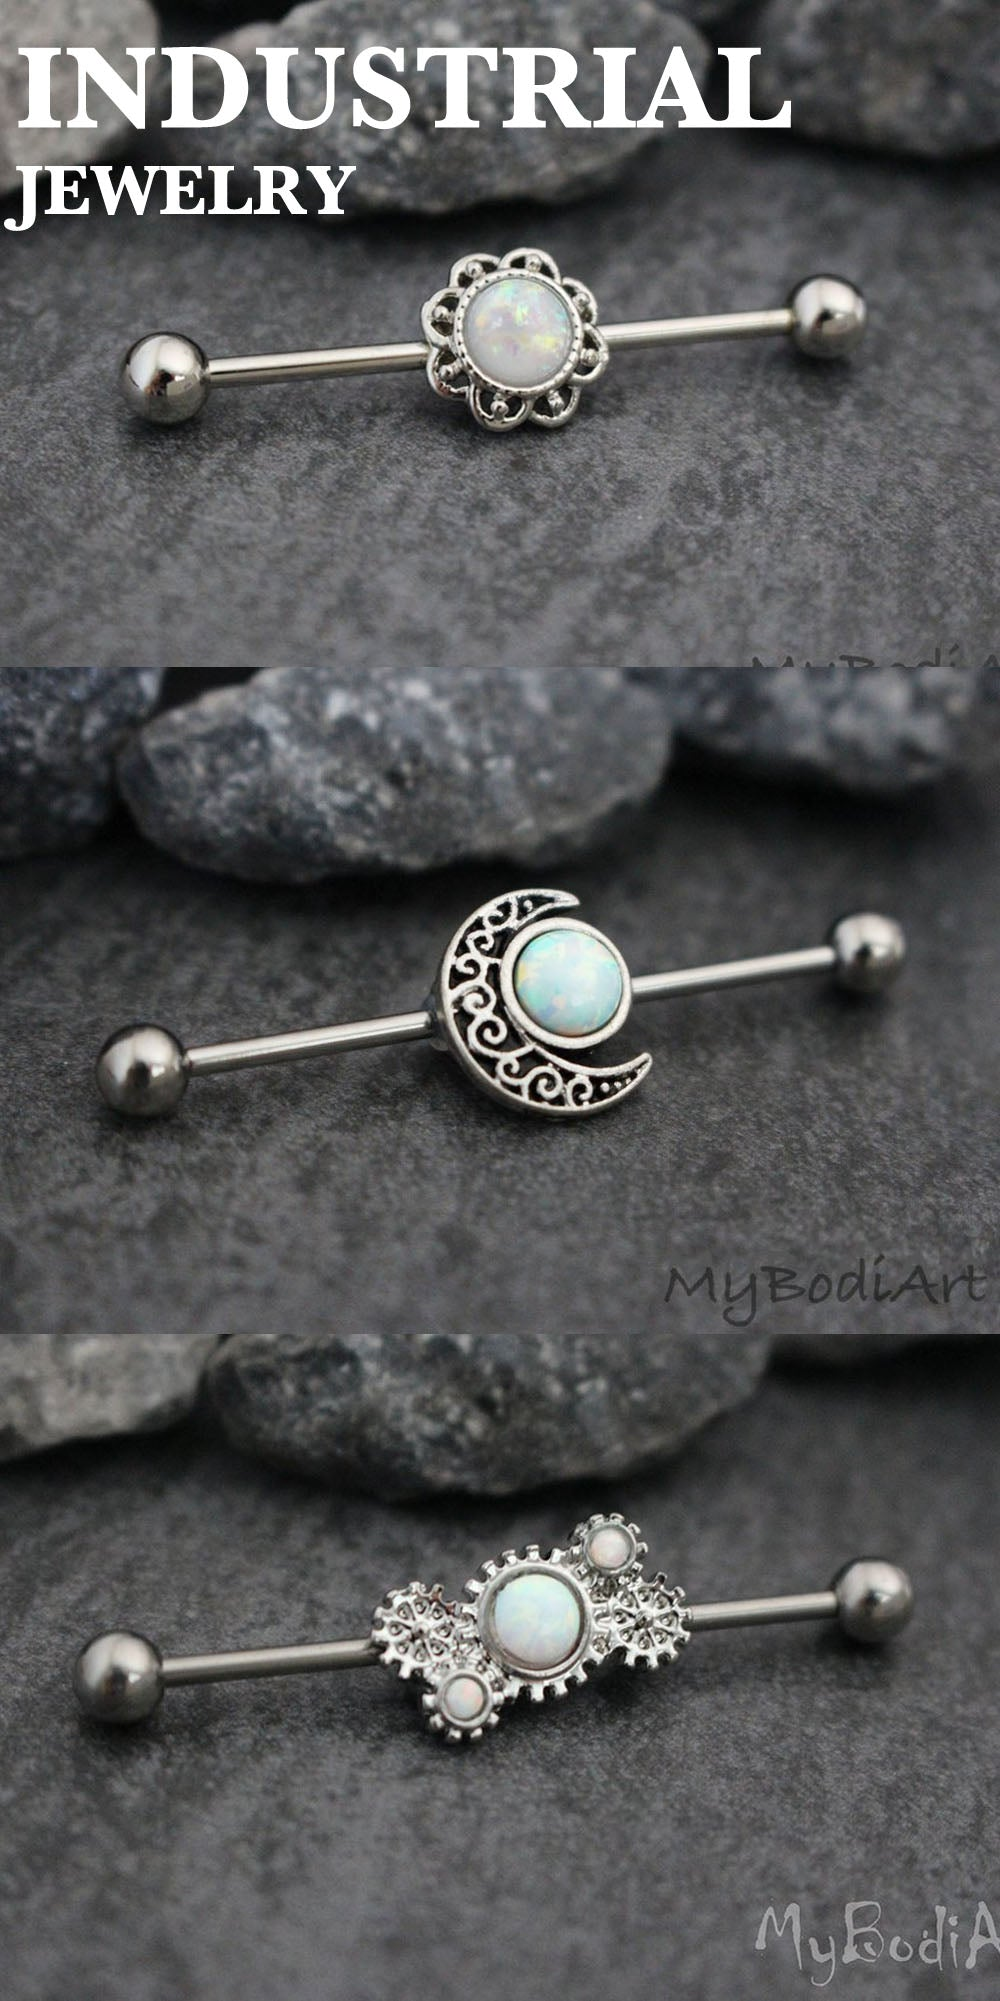 Ear Piercing Jewelry Opal Industrial Barbell Earring 14G at MyBodiArt.com